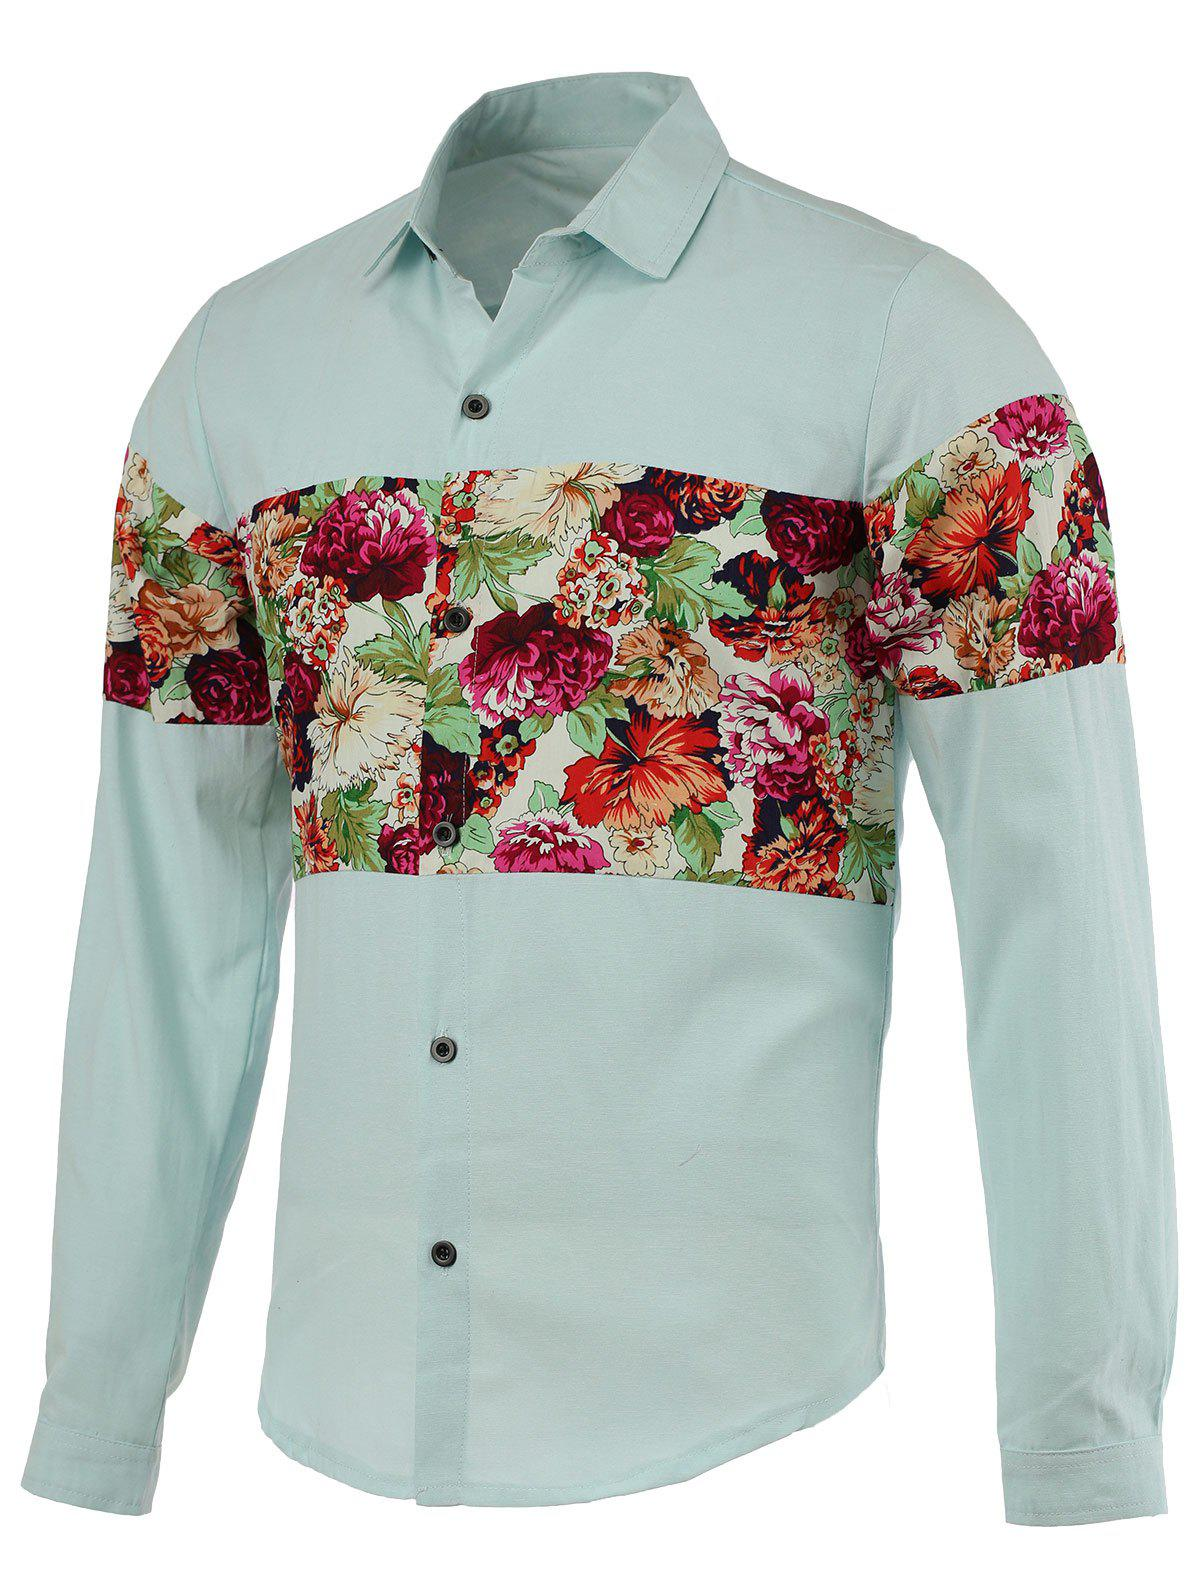 Turn-Down Collar Flowers Printed Splicing Design Long Sleeve Men's Shirt - BLUE 2XL